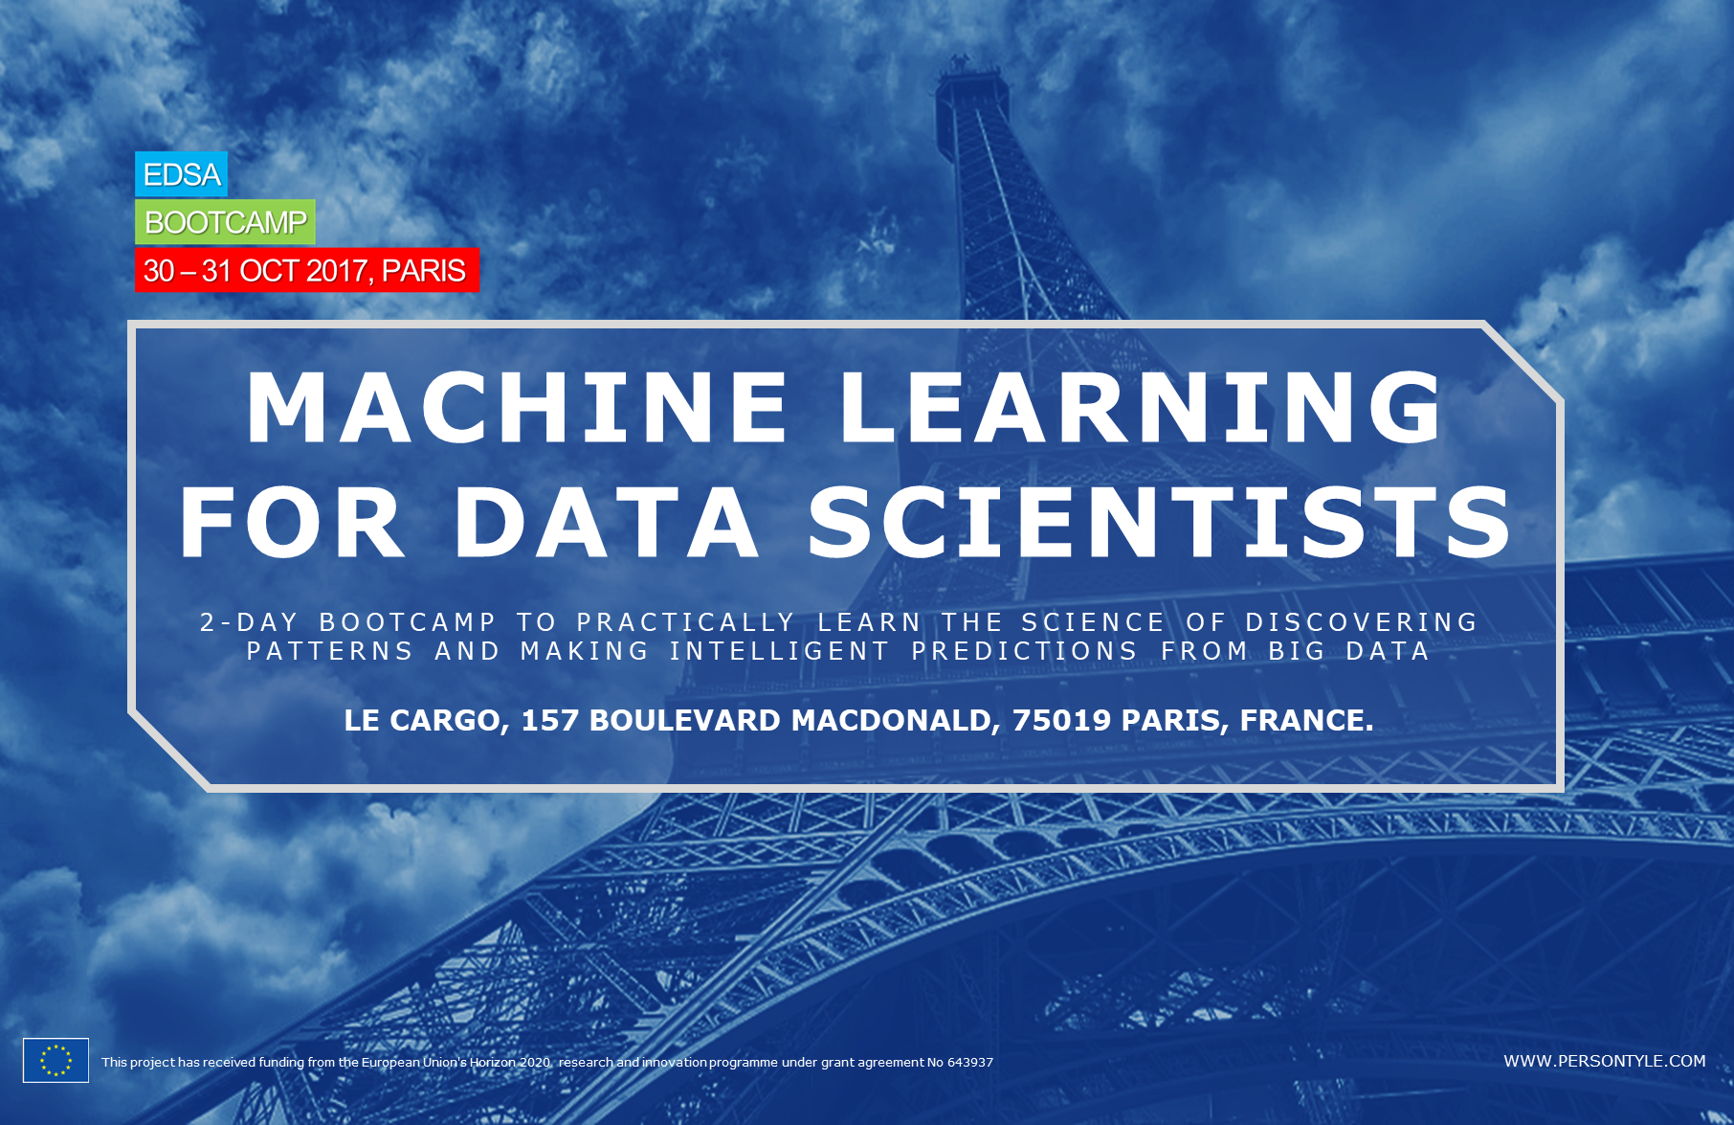 EDSA BOOTCAMP PARIS- MACHINE LEARNING FOR DATA SCIENTISTS